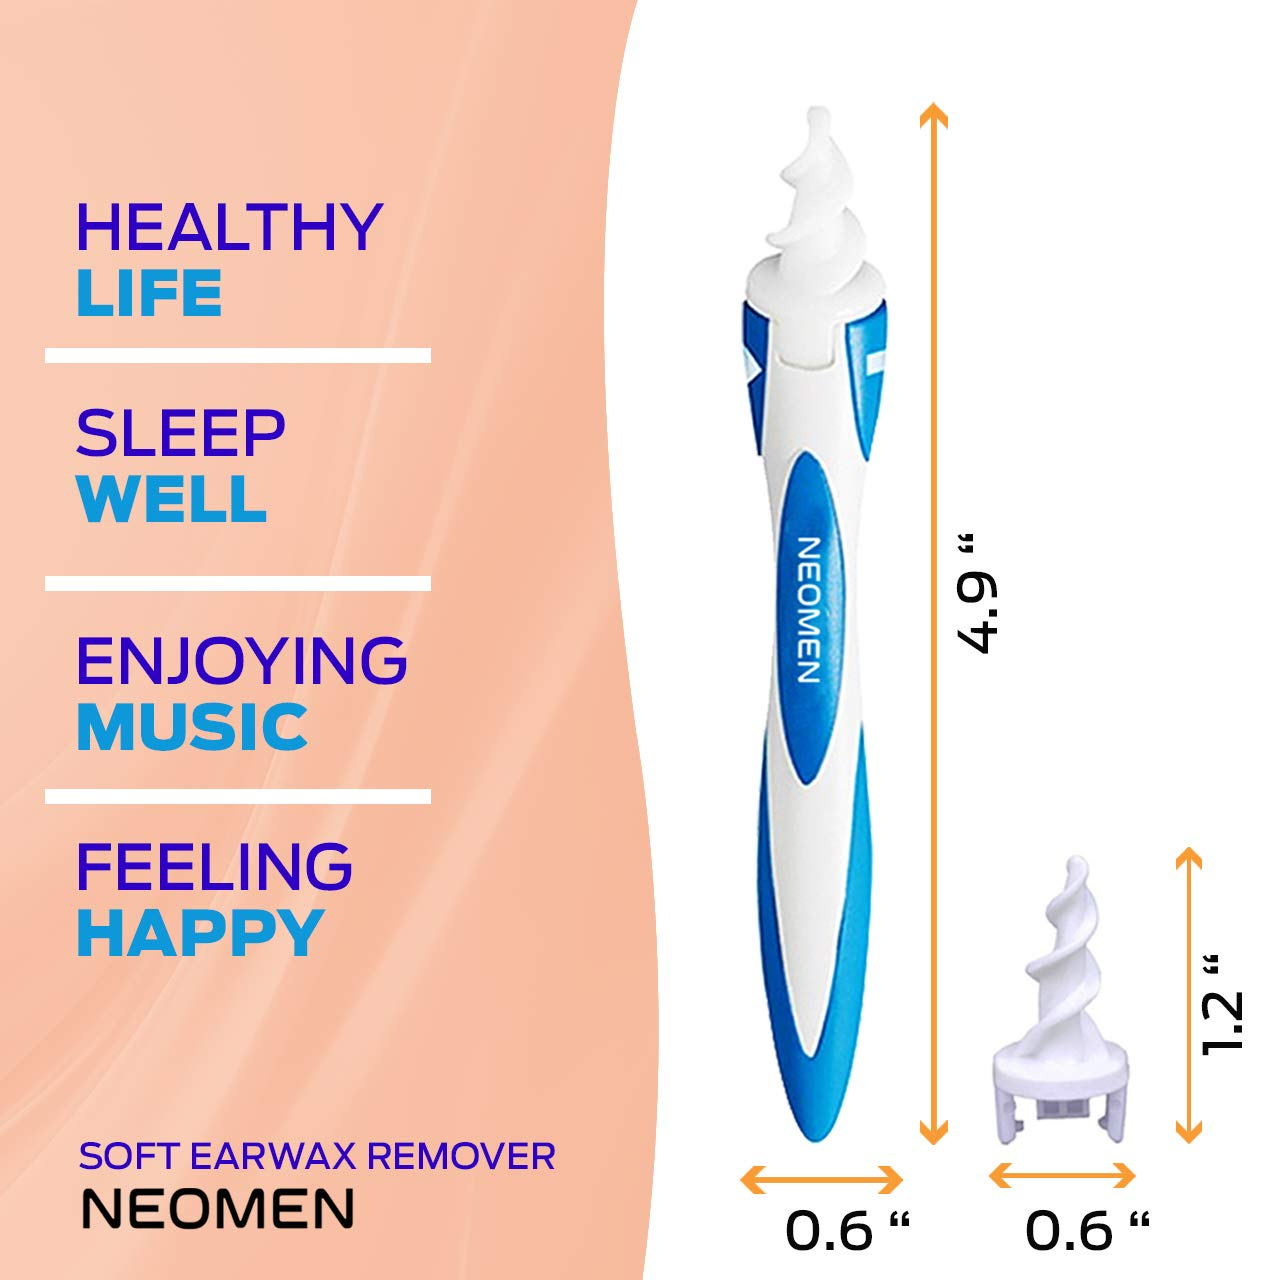 Home Appliances Liberal Portable Electric Toothbrush Oral Care Deep Cleaning Battery Power Brush 3 Heads Grade Products According To Quality